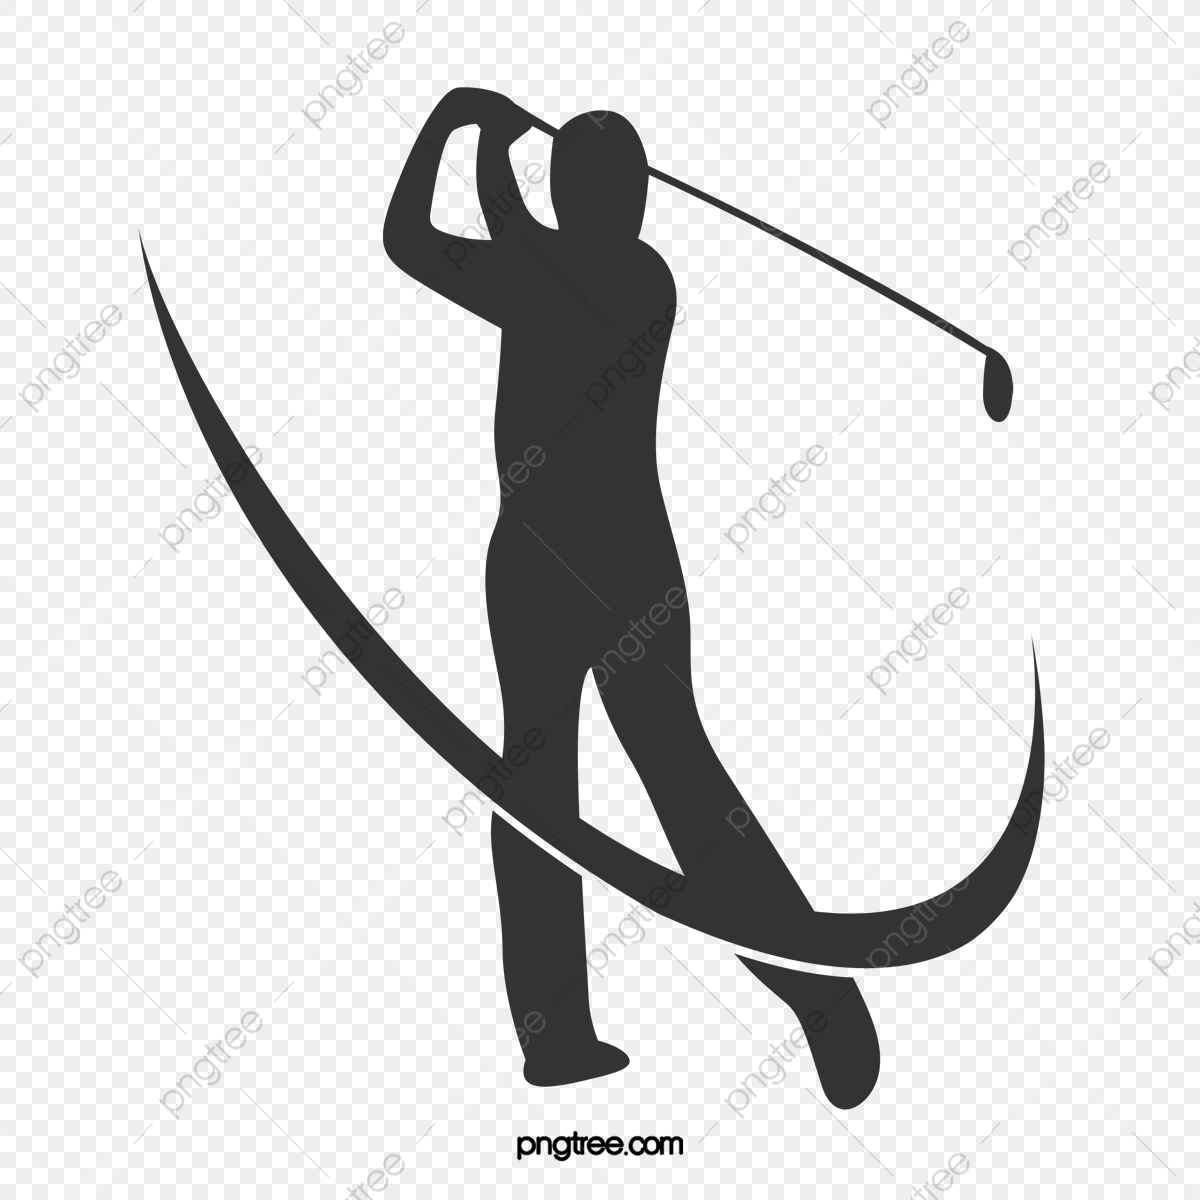 hight resolution of commercial use resource upgrade to premium plan and get license authorization upgradenow golf golf clipart